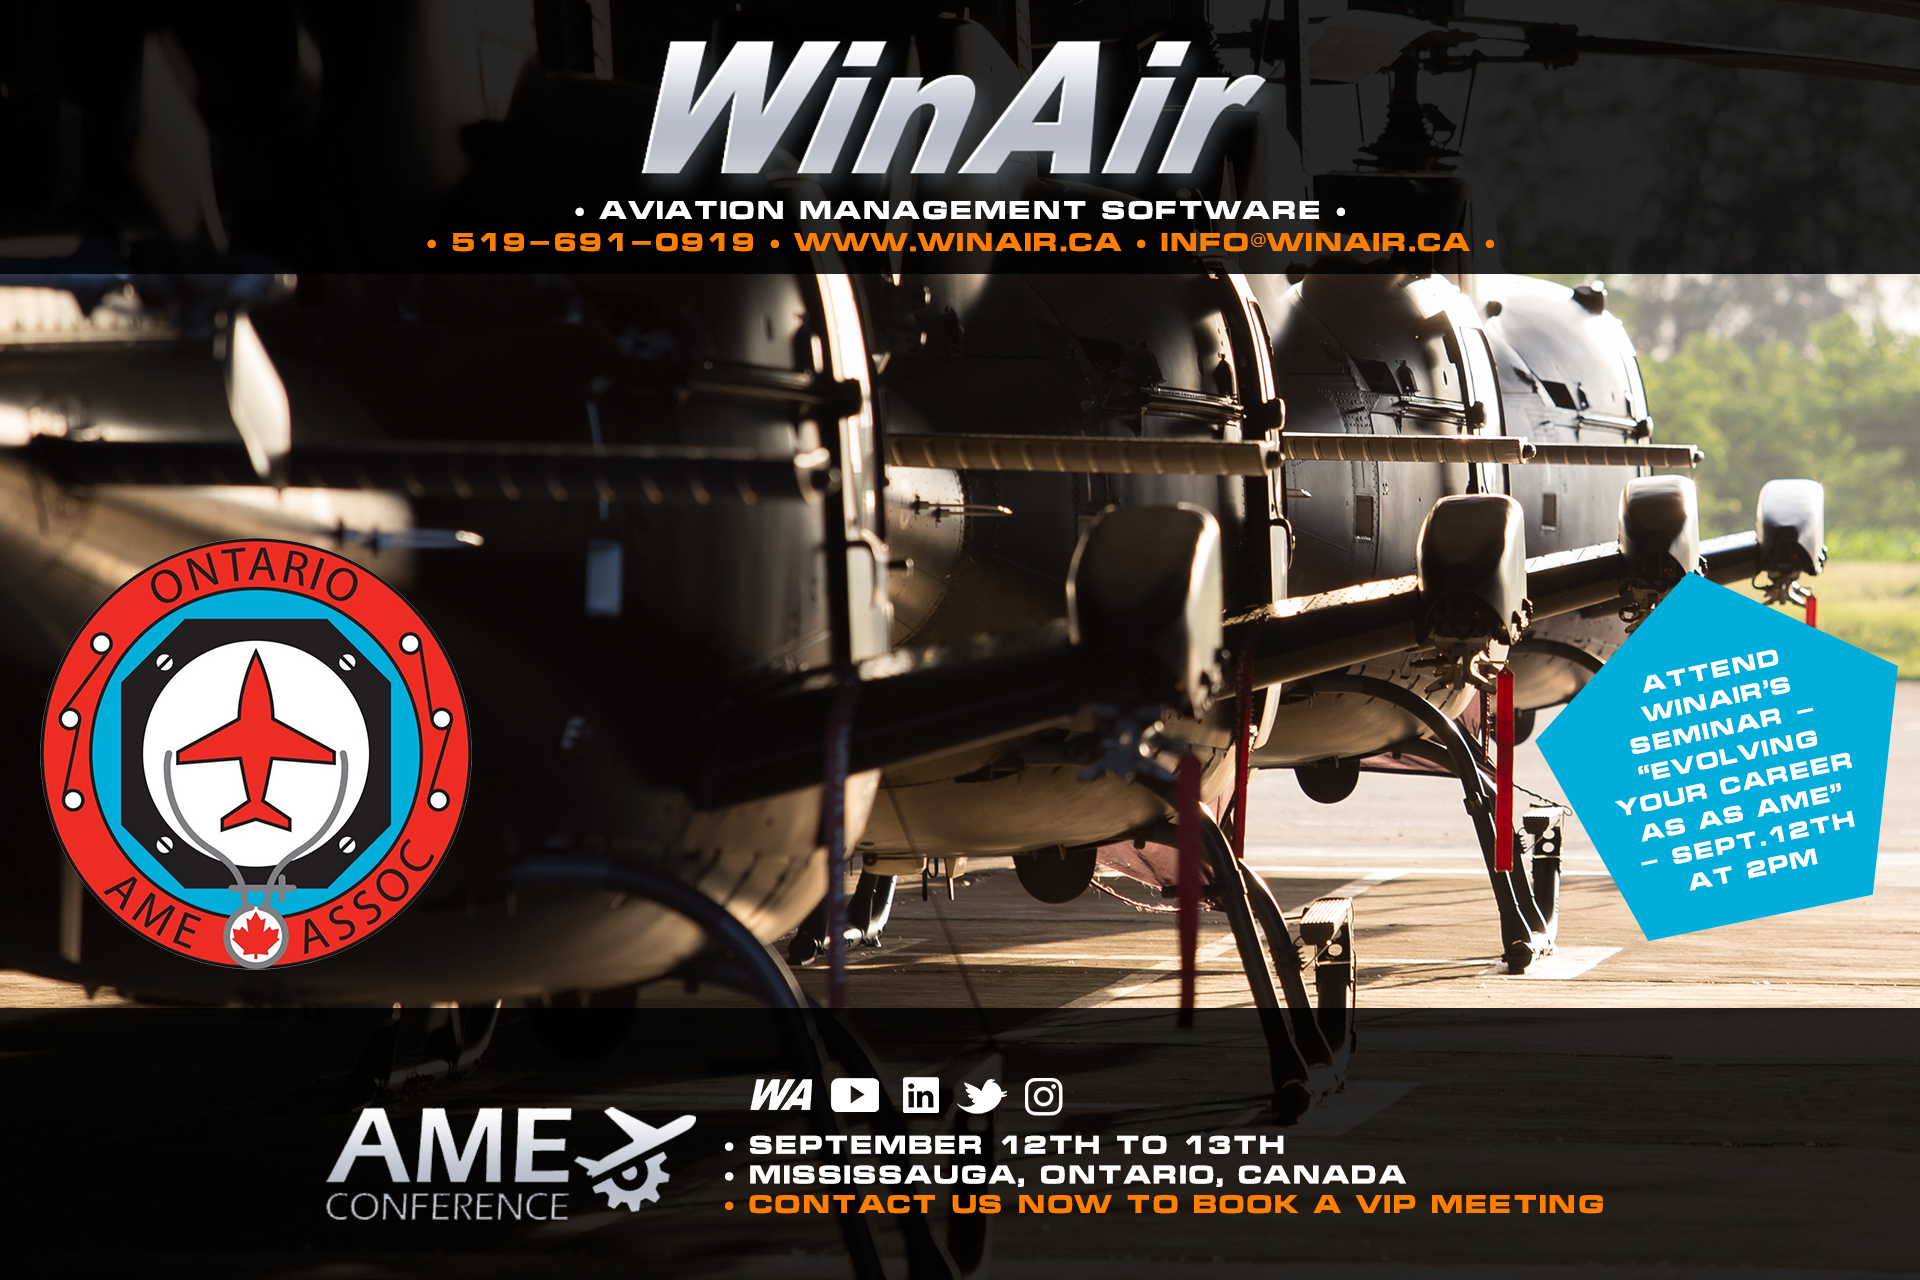 WinAir - 2019 Ontario AME Conference - Evolving Your Career as an AME - Promotional Image in Aircraft Hangar